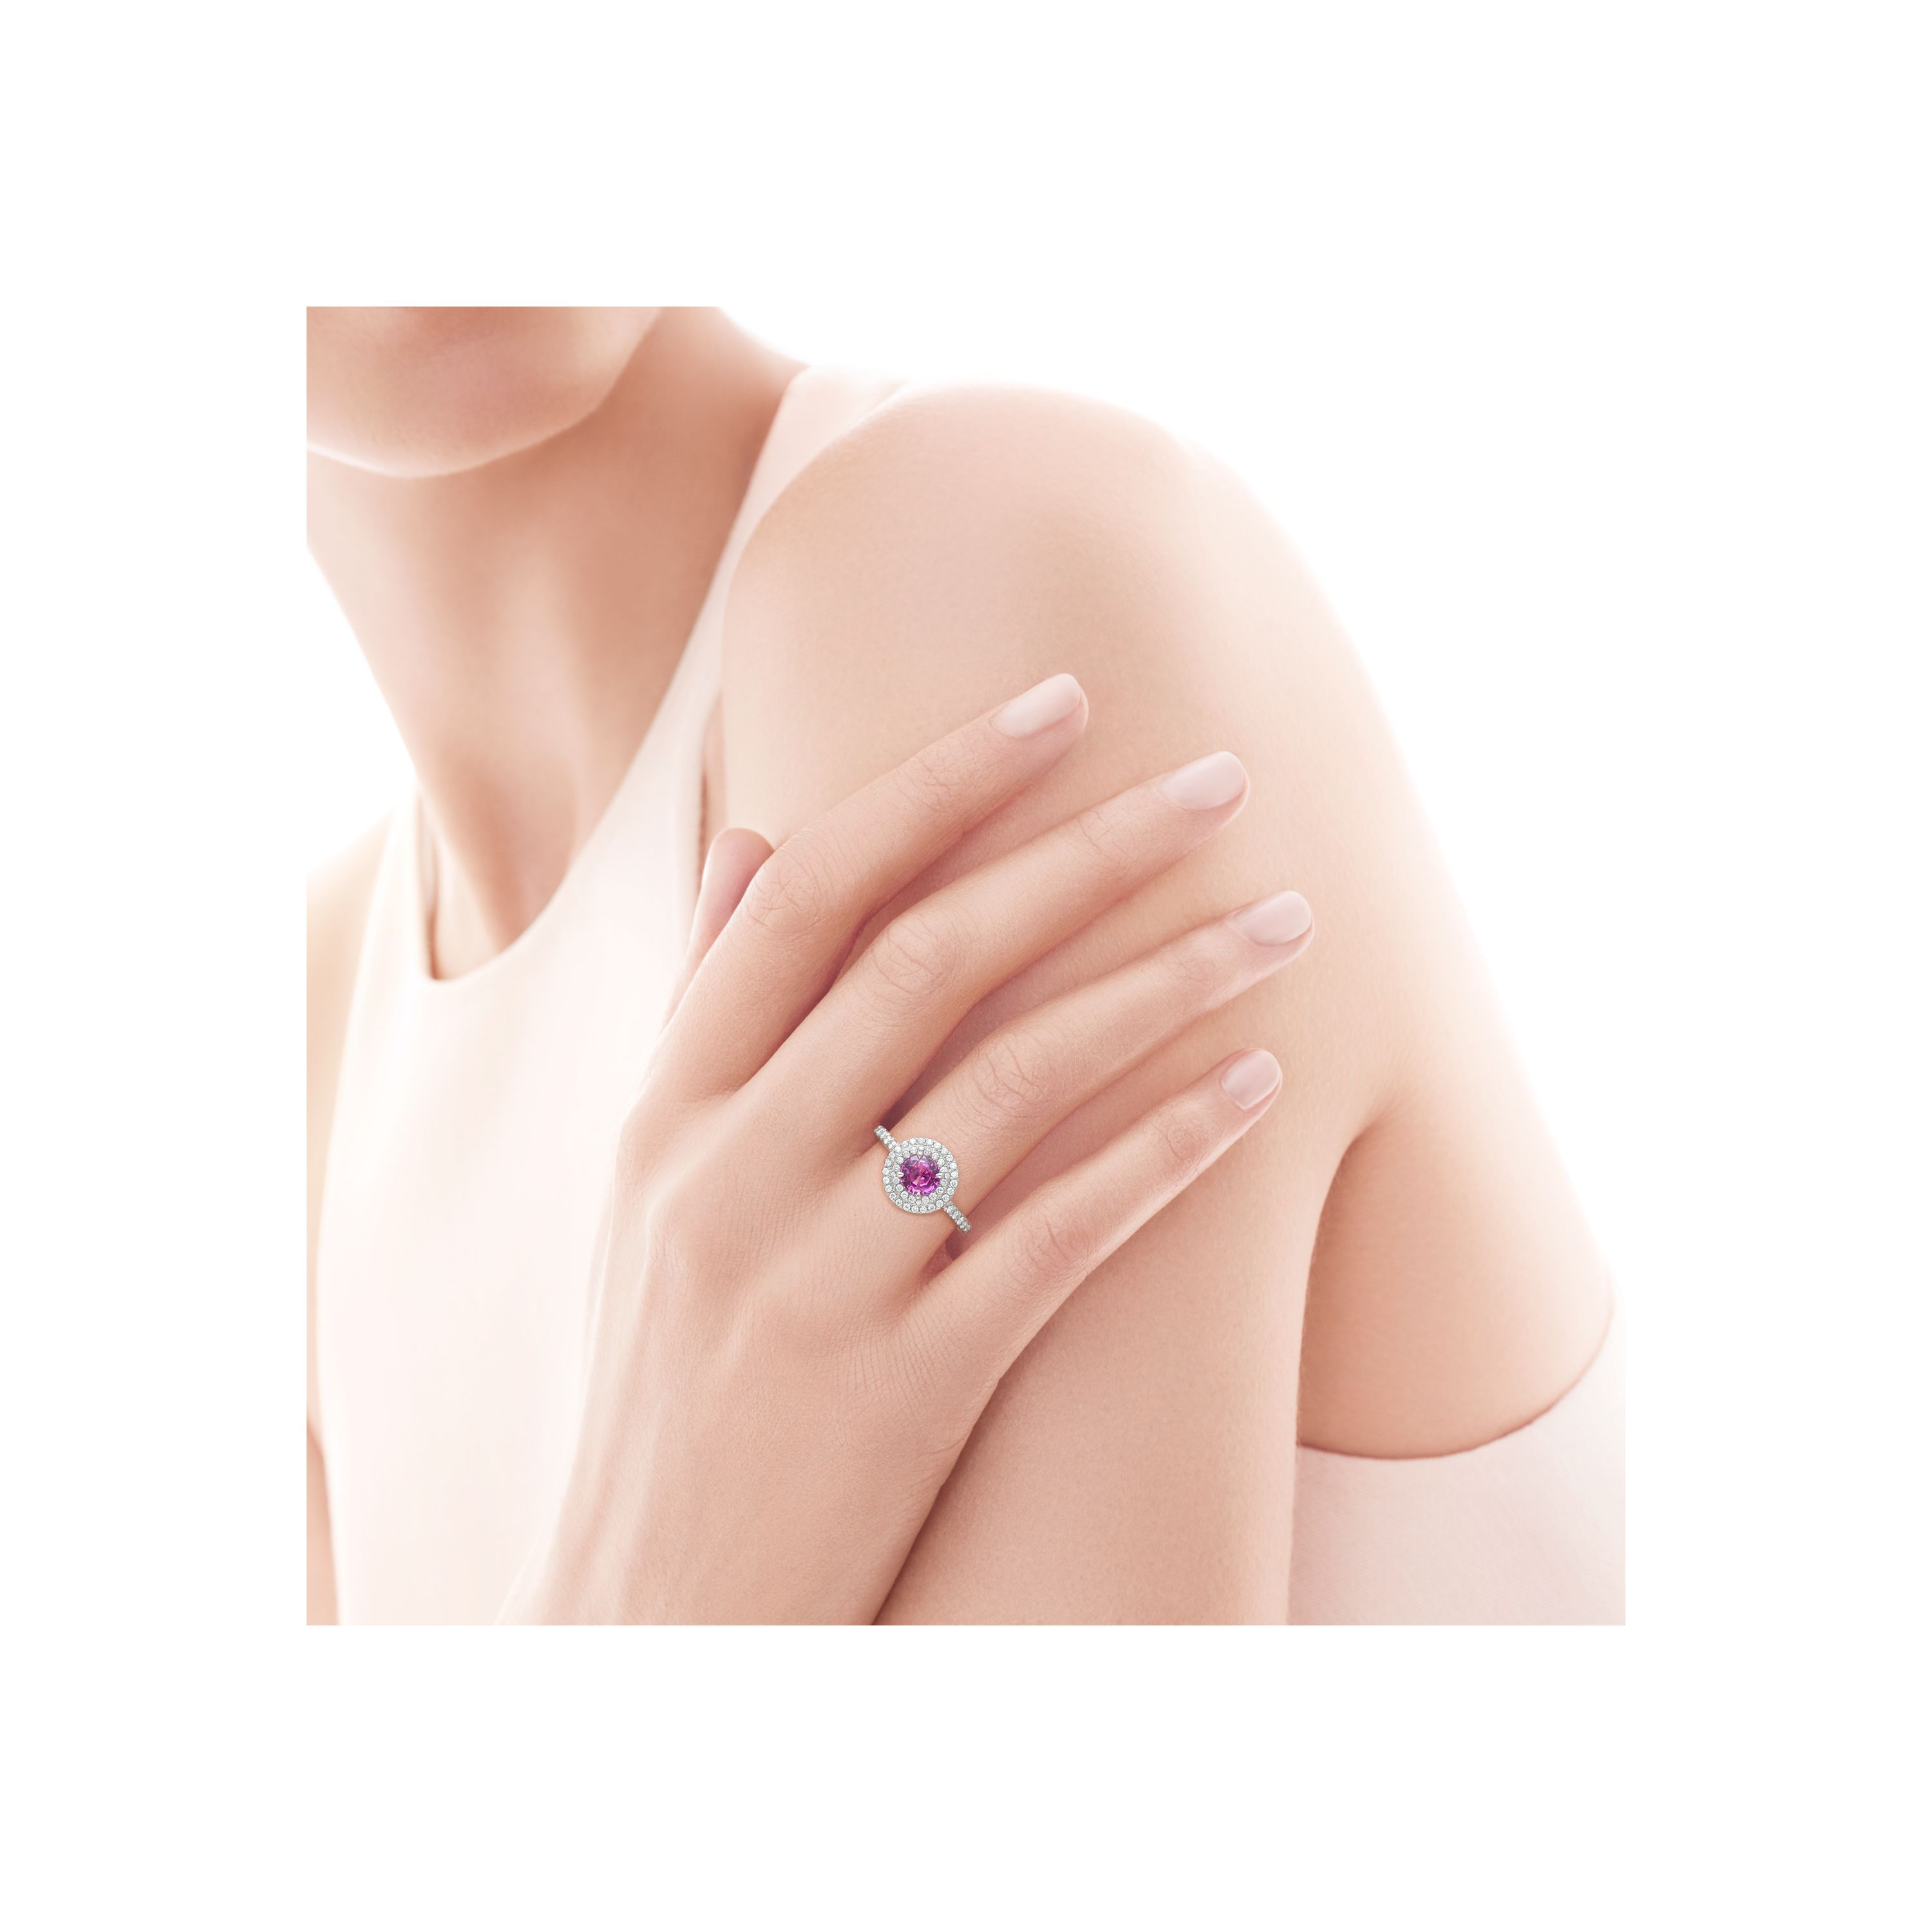 Tiffany Sapphire Enement Ring | Tiffany Soleste Ring In Platinum With A 45 Carat Pink Sapphire And